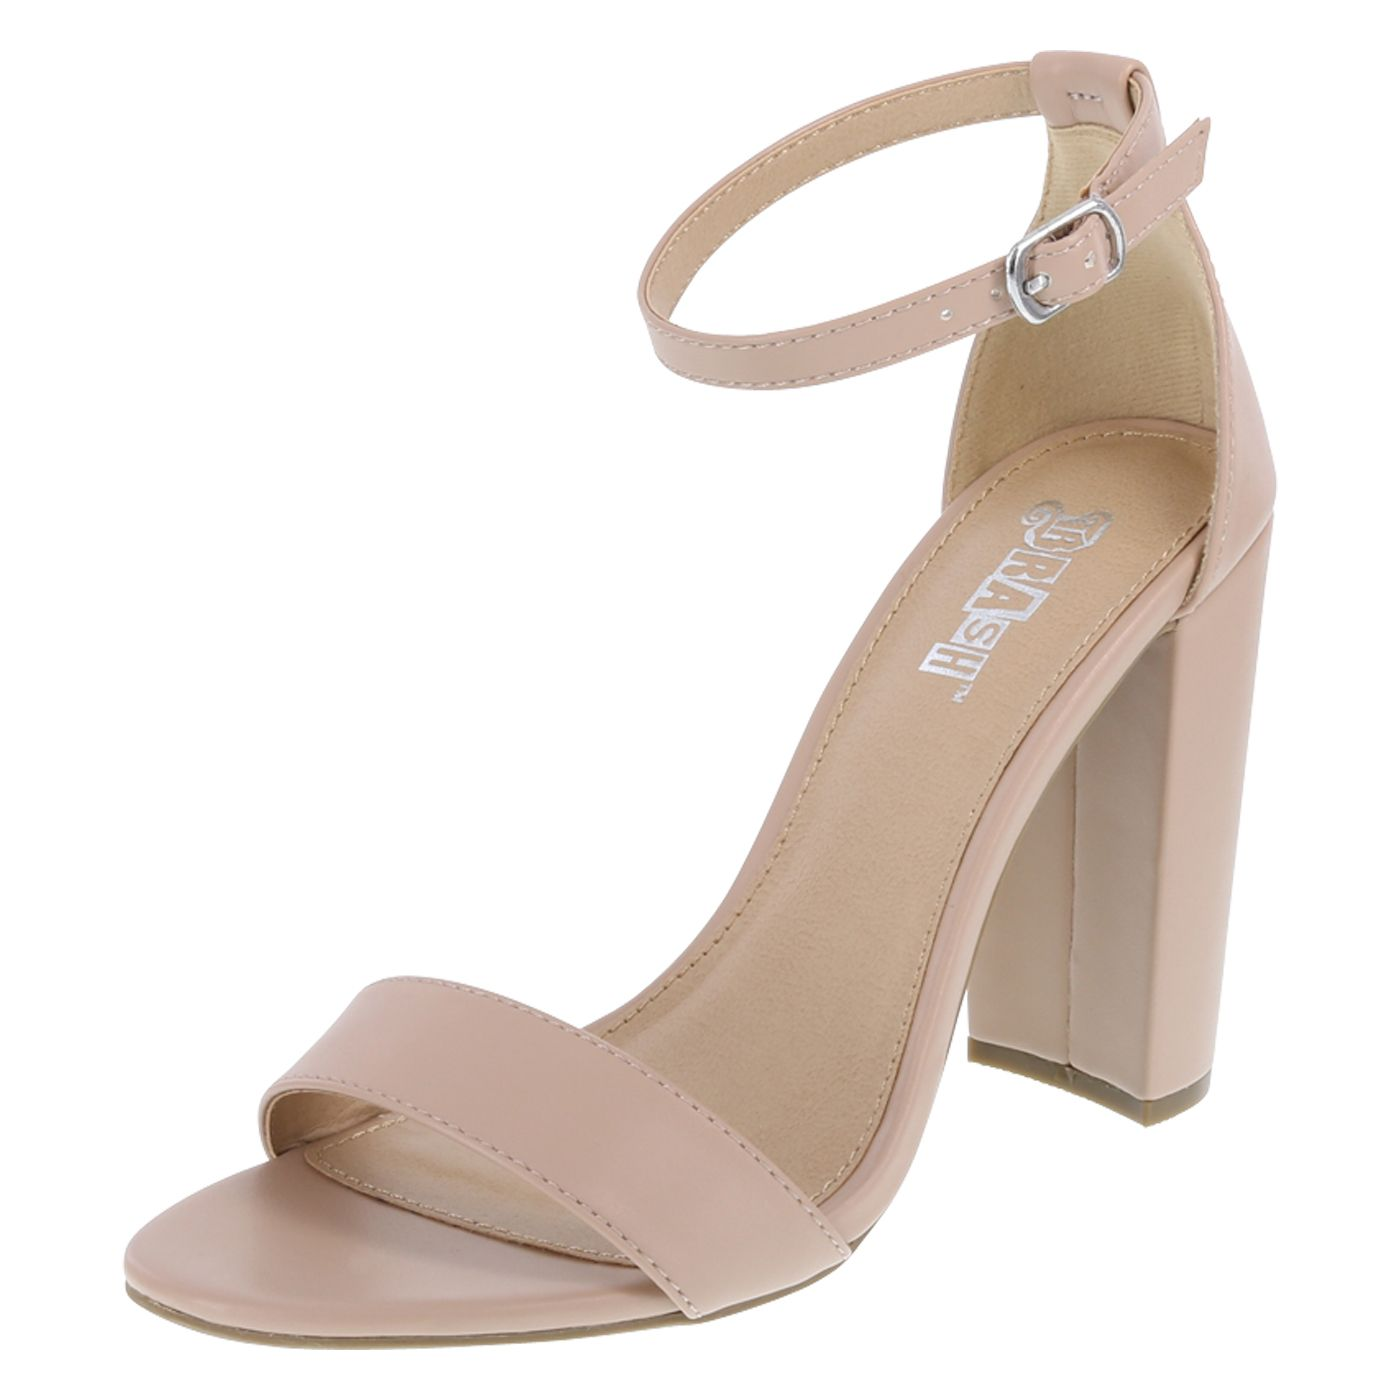 17e696f648d55 Go big or go home! The Houston Sandal from Brash features a rich faux suede  upper